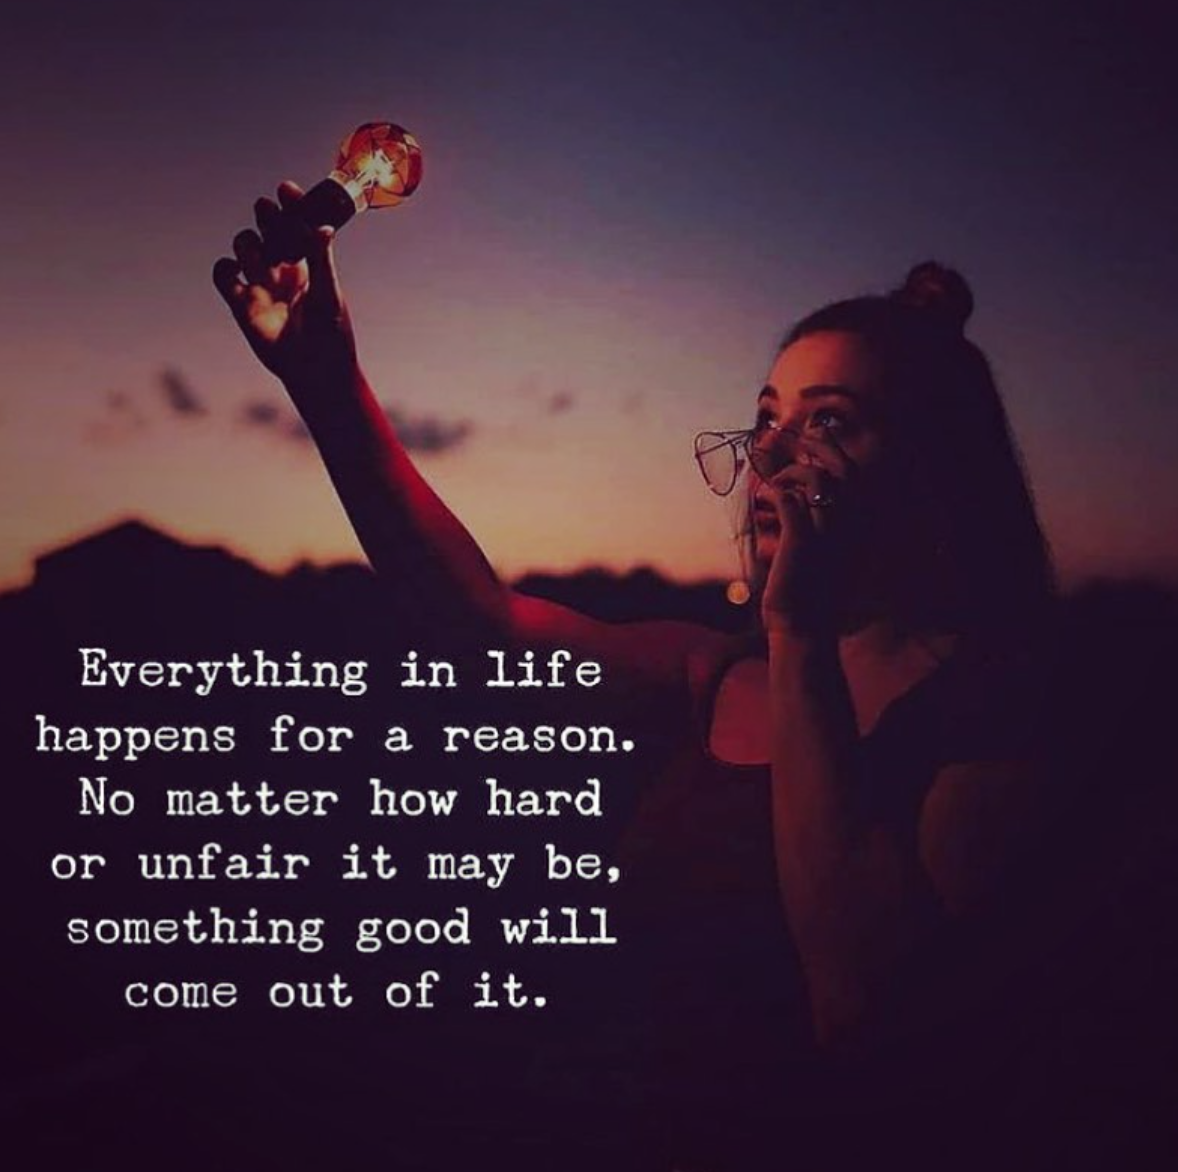 [Image] Everything in life happens for a reason. No matter how hard or unfair it may be, something good will come out of it.